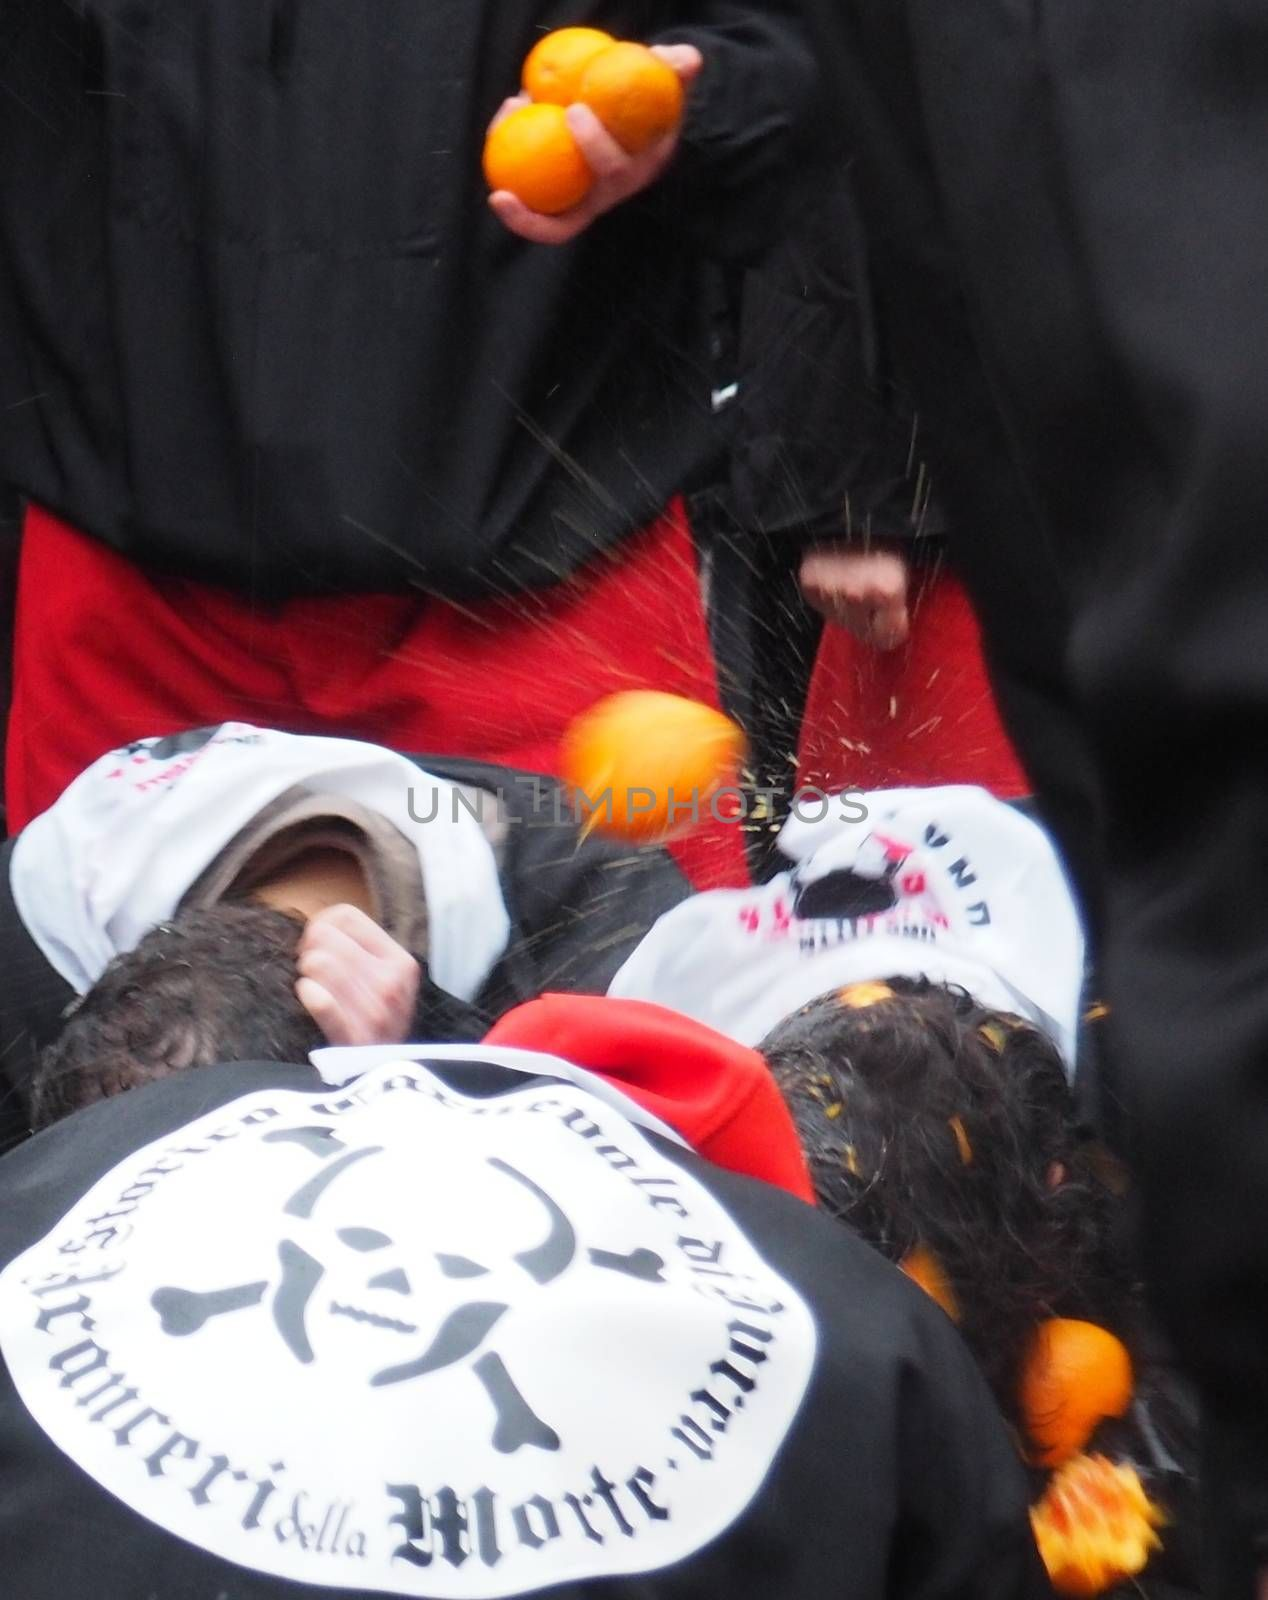 ITALY, Ivrea: People are hit with fruit during the battle of oranges on February 7, 2016, in Ivrea, Italy.An estimated 7,000 people turned out to pelt each other at the historic festival. 70 people were injured by the flying fruit.